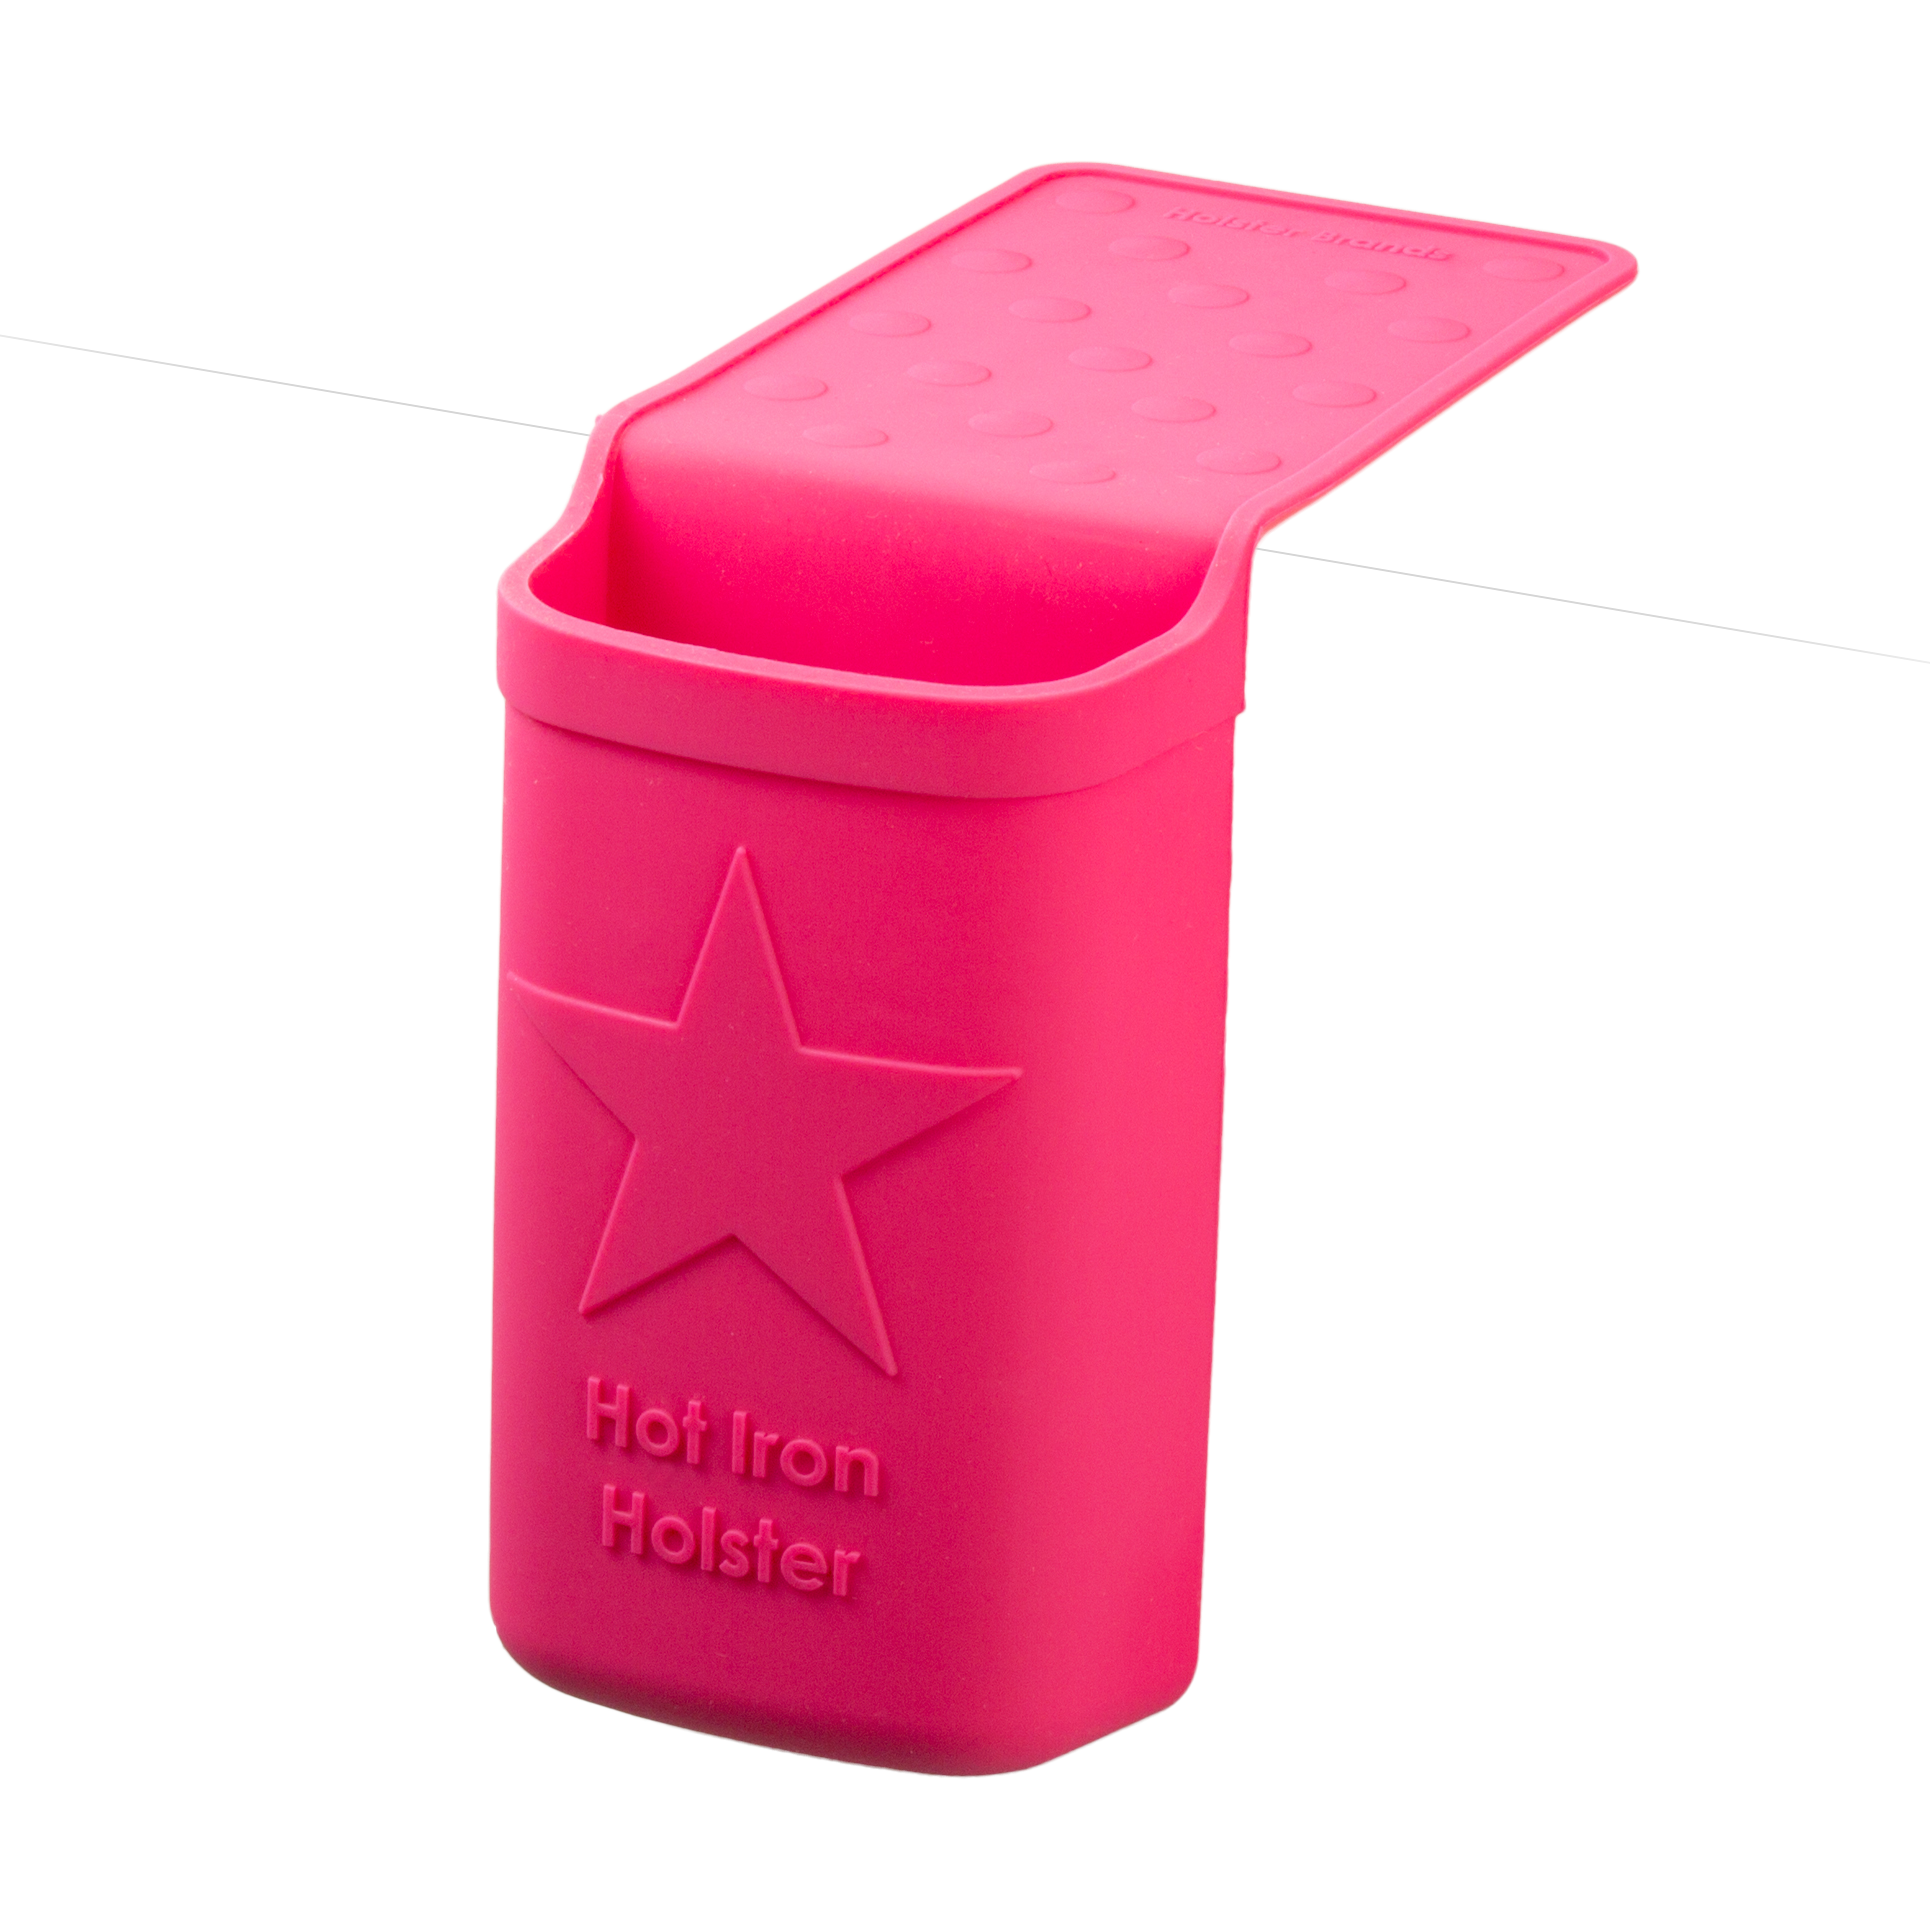 Holster Brands Heat Resistant Silicone Holder for Flat Irons, Curling Irons, Straighteners